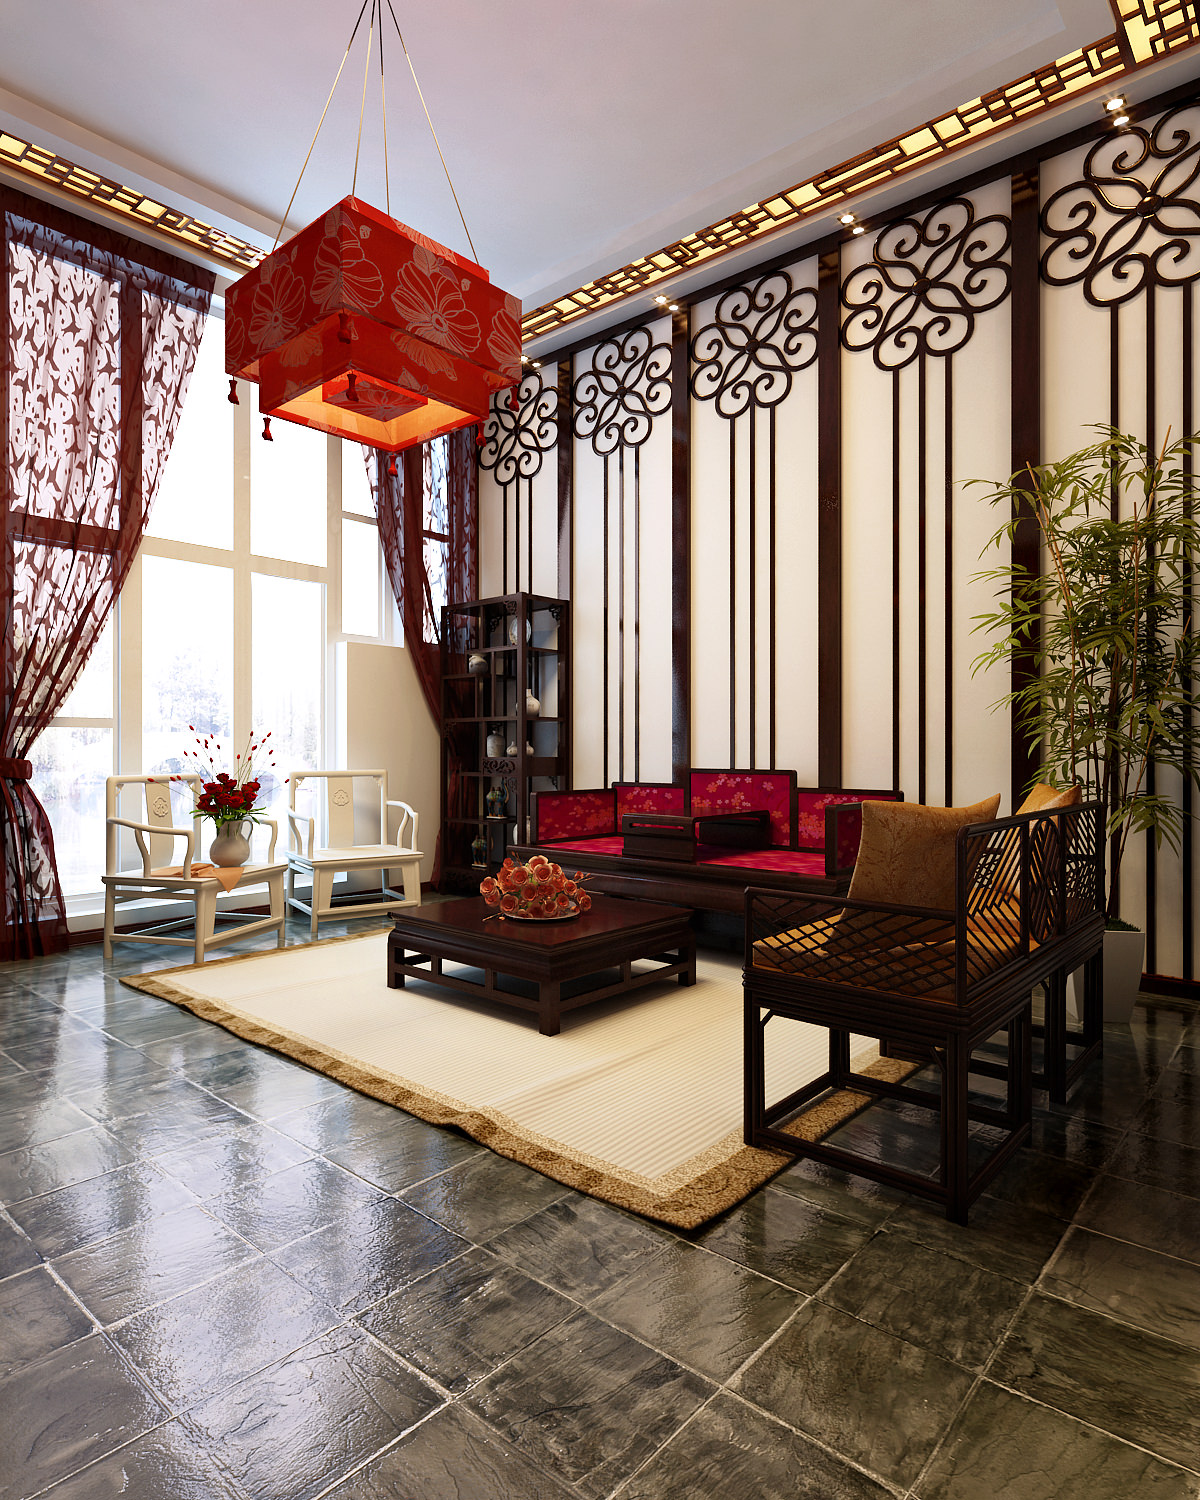 Asian Inspired Living Room: Chinese Style Living Room 3D Model .max